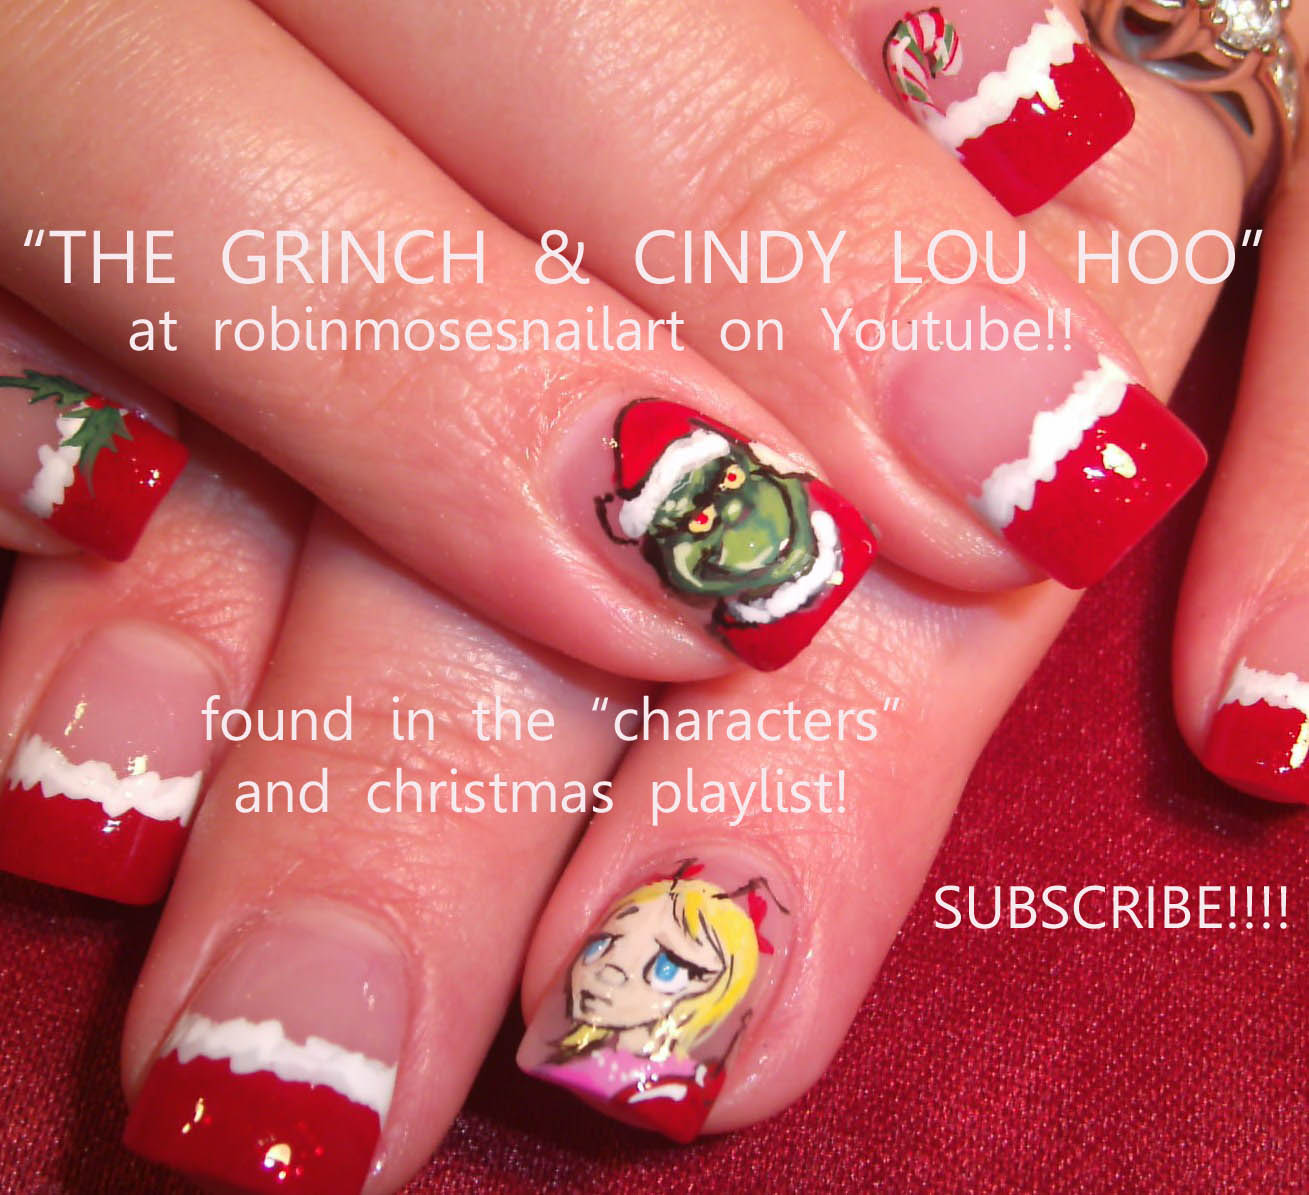 Christmas Nail Art Nails Cute Xmas Cutest Ever Grinch Penquin Snowman